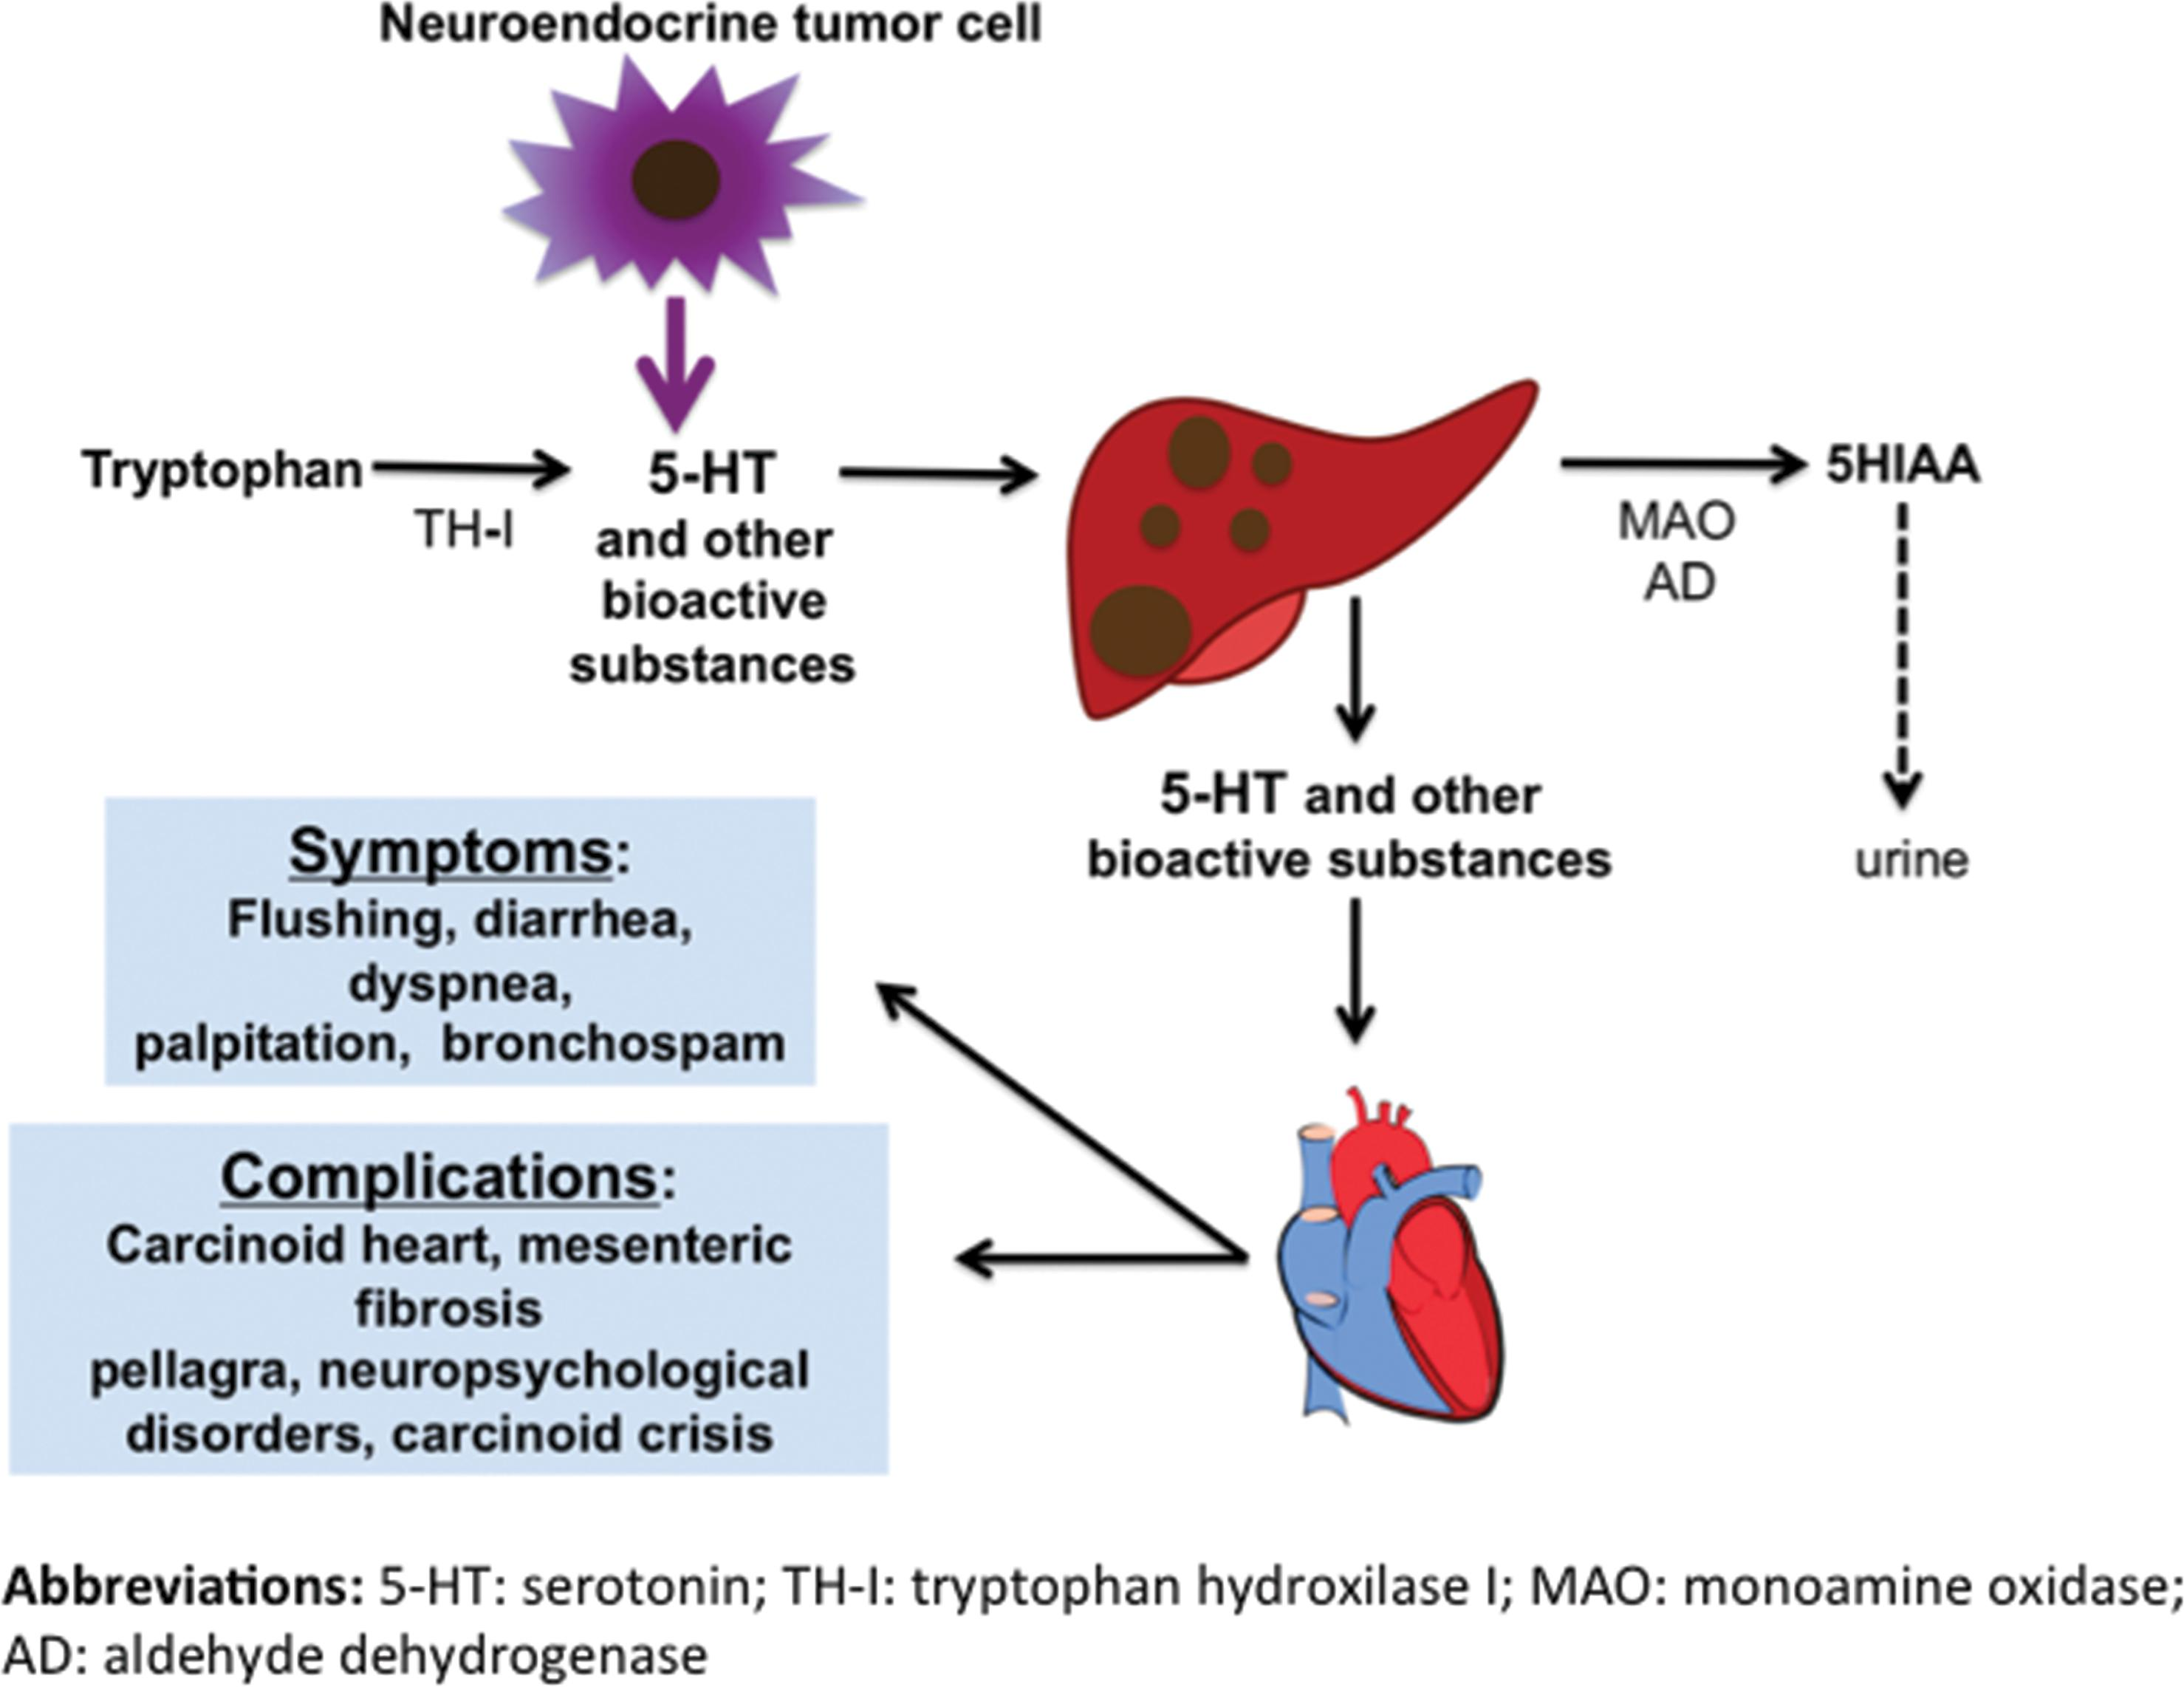 Figure 1 Summary of the pathophysiology of carcinoid syndrome.